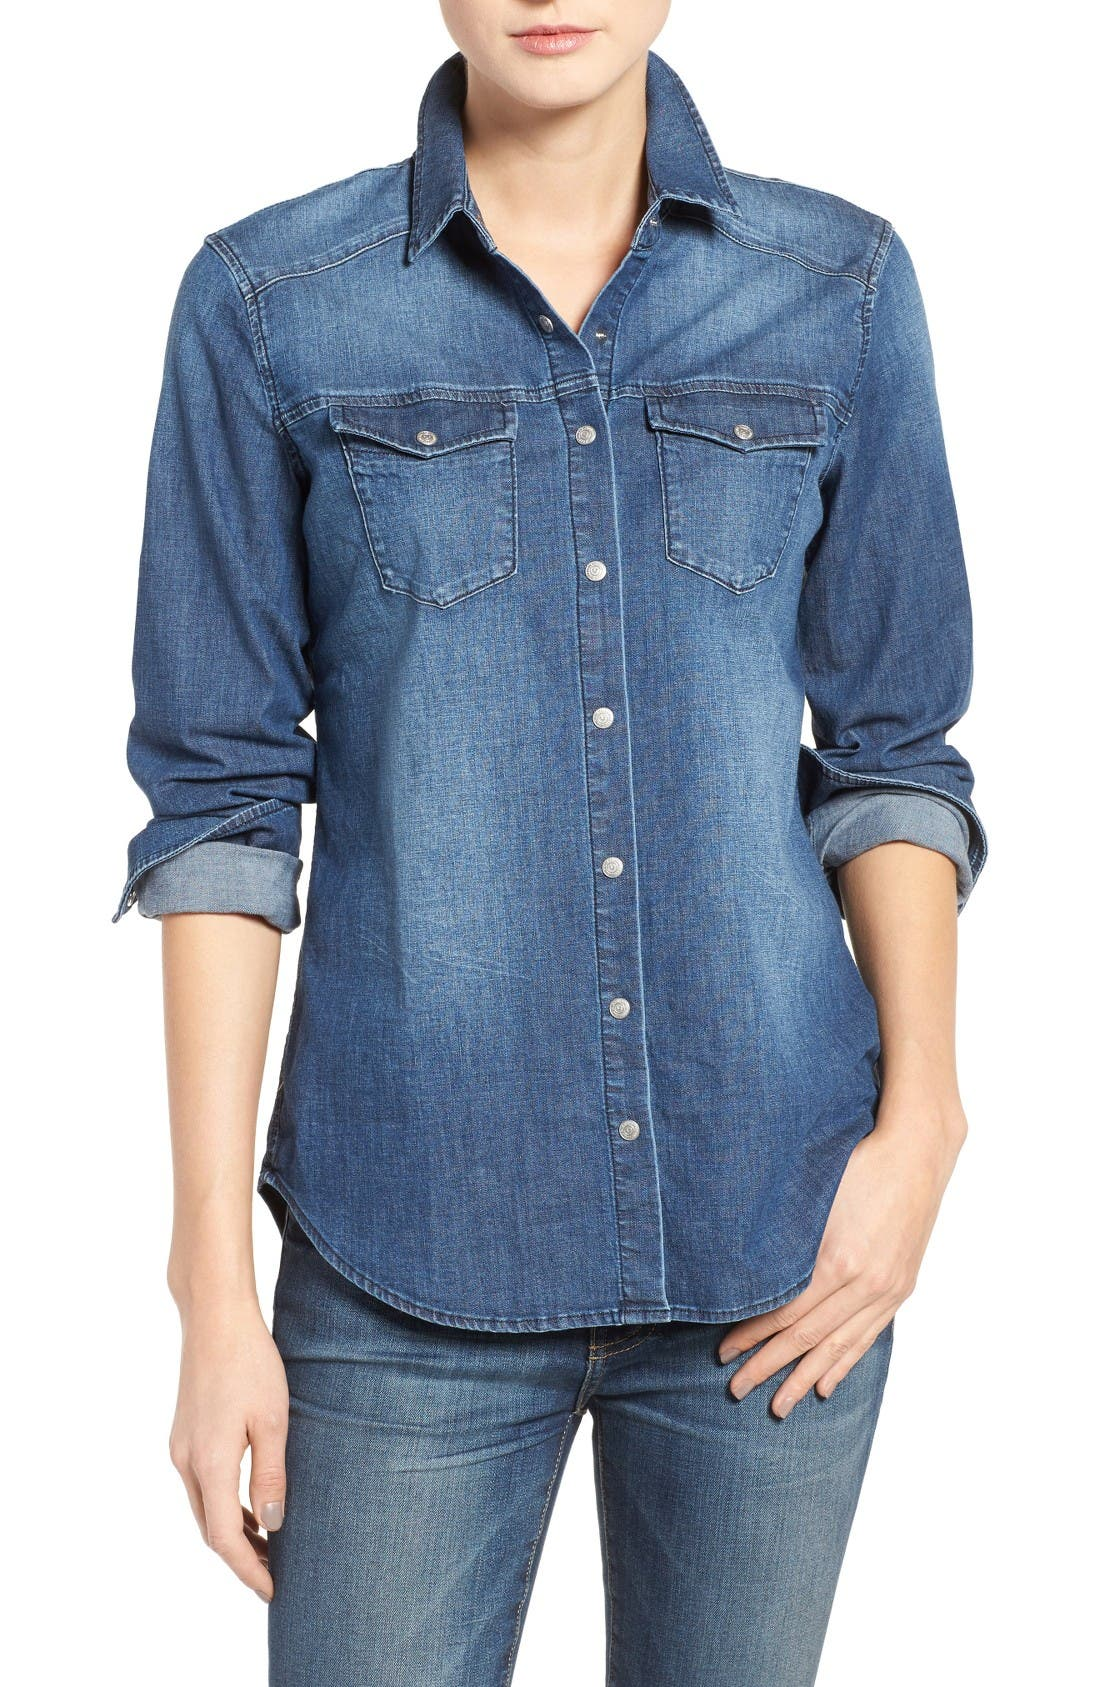 True Religion Brand Jeans Georgia Denim Shirt